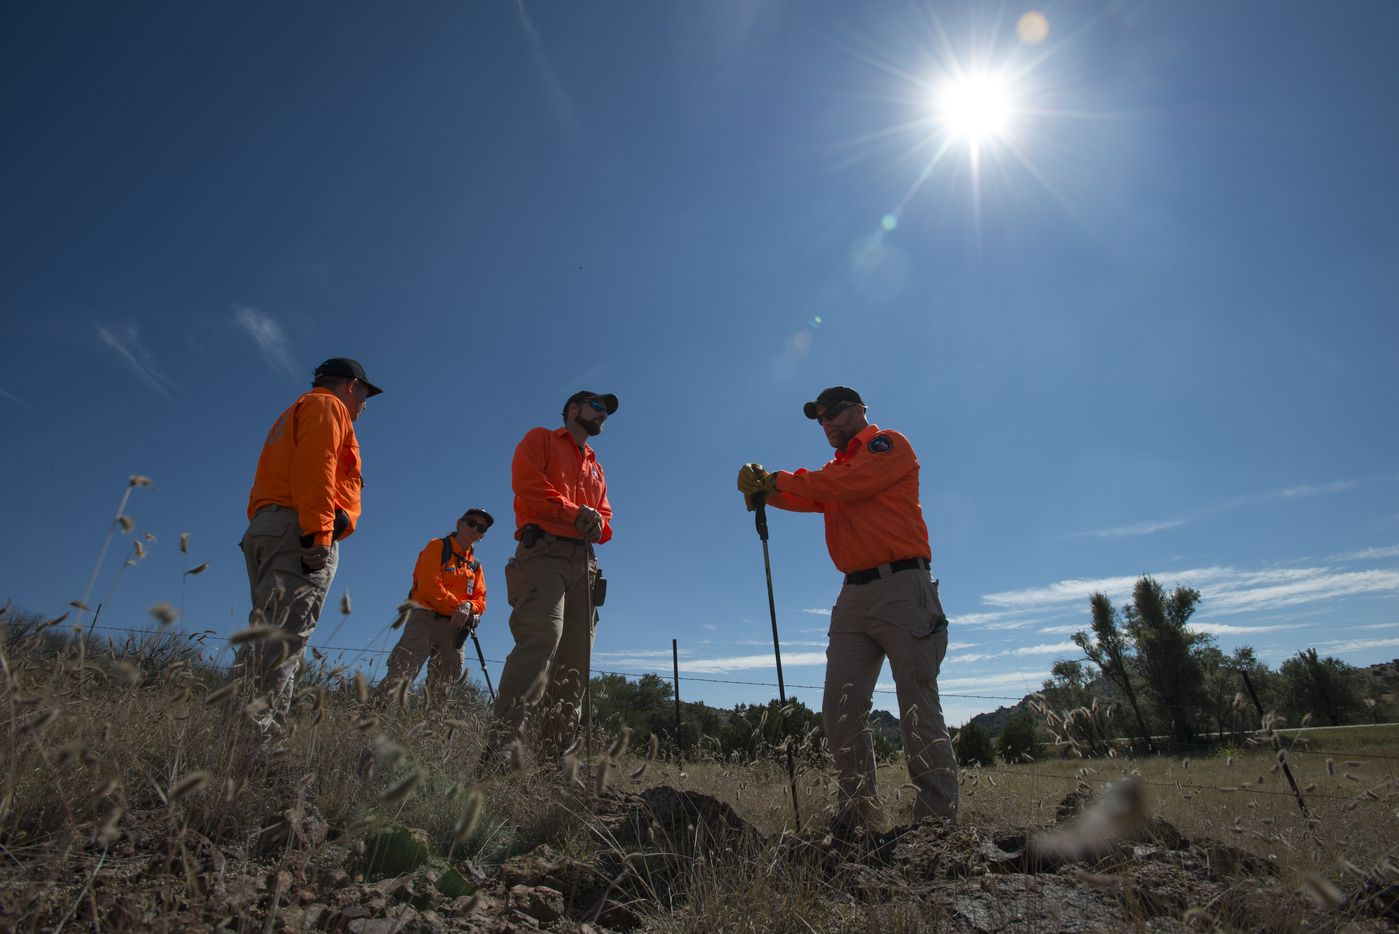 Members of Texas Search and Rescue pause to discuss their plan for searching a hillside between Marfa and Alpine, Texas while searching Saturday, Oct. 22, 2016 for Zuzu Verk.